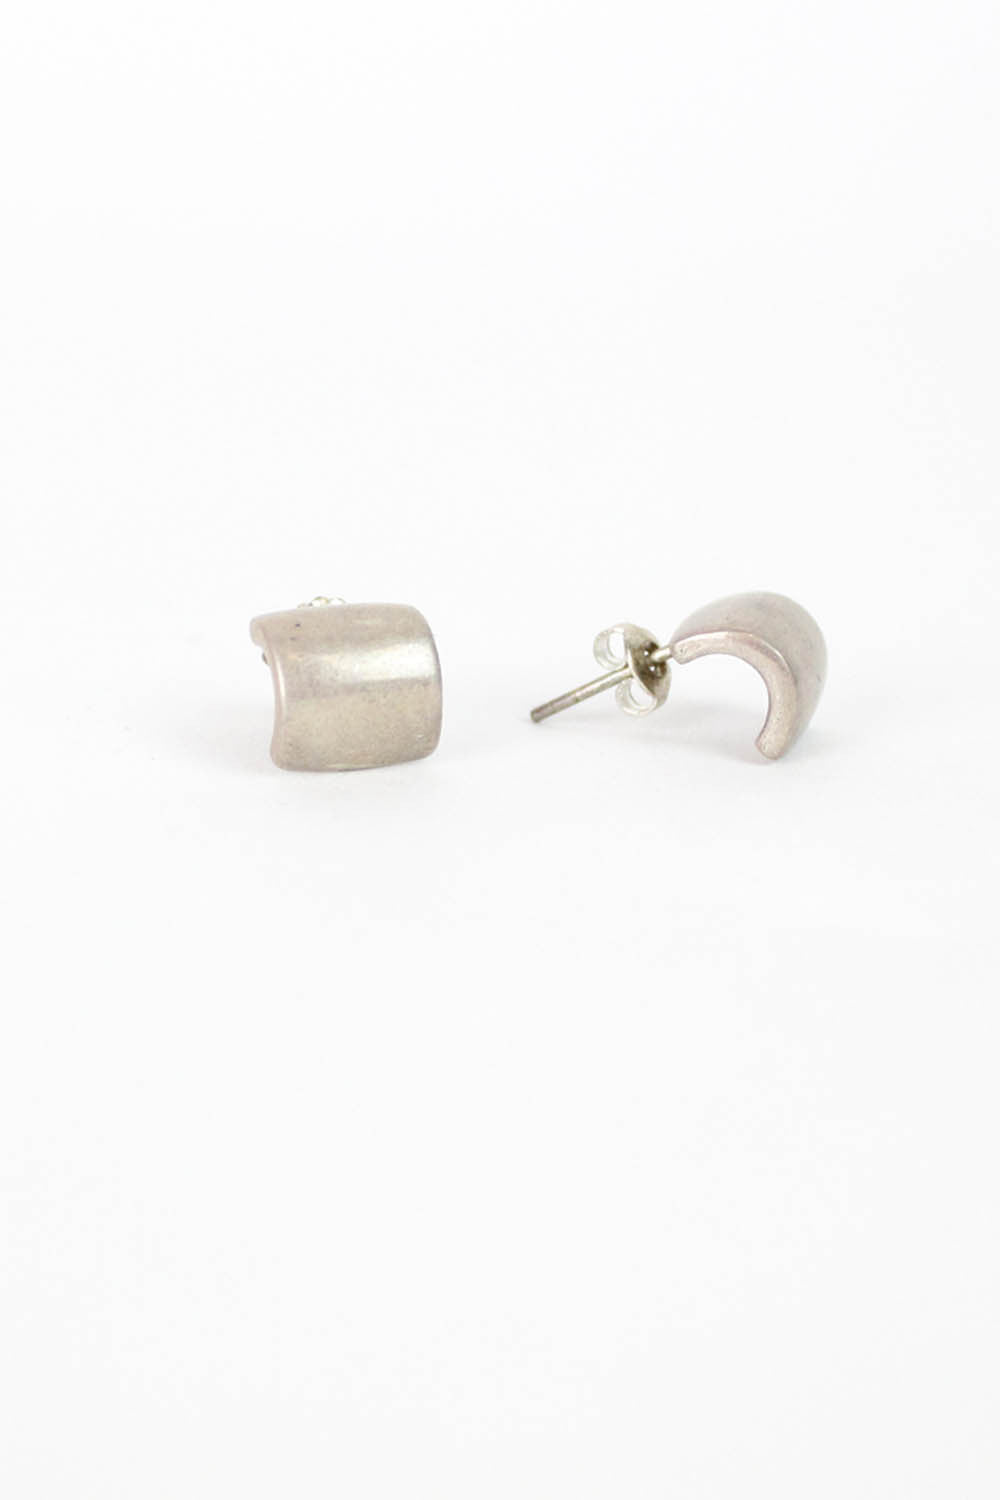 Modernist Sterling Lobe Earrings